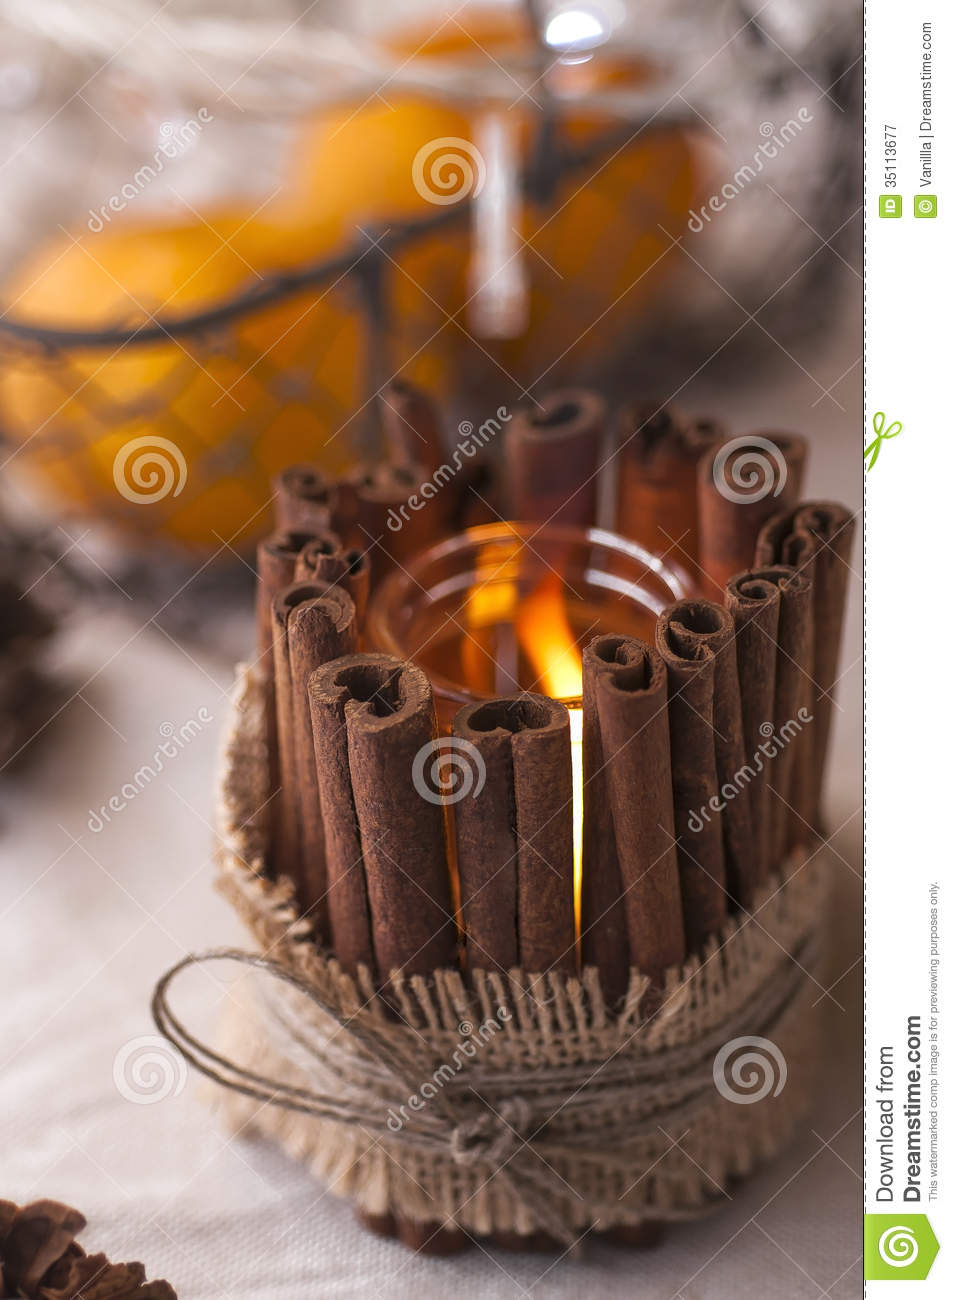 Handmade Candle Stand Designs : Handmade candle holder stock image of